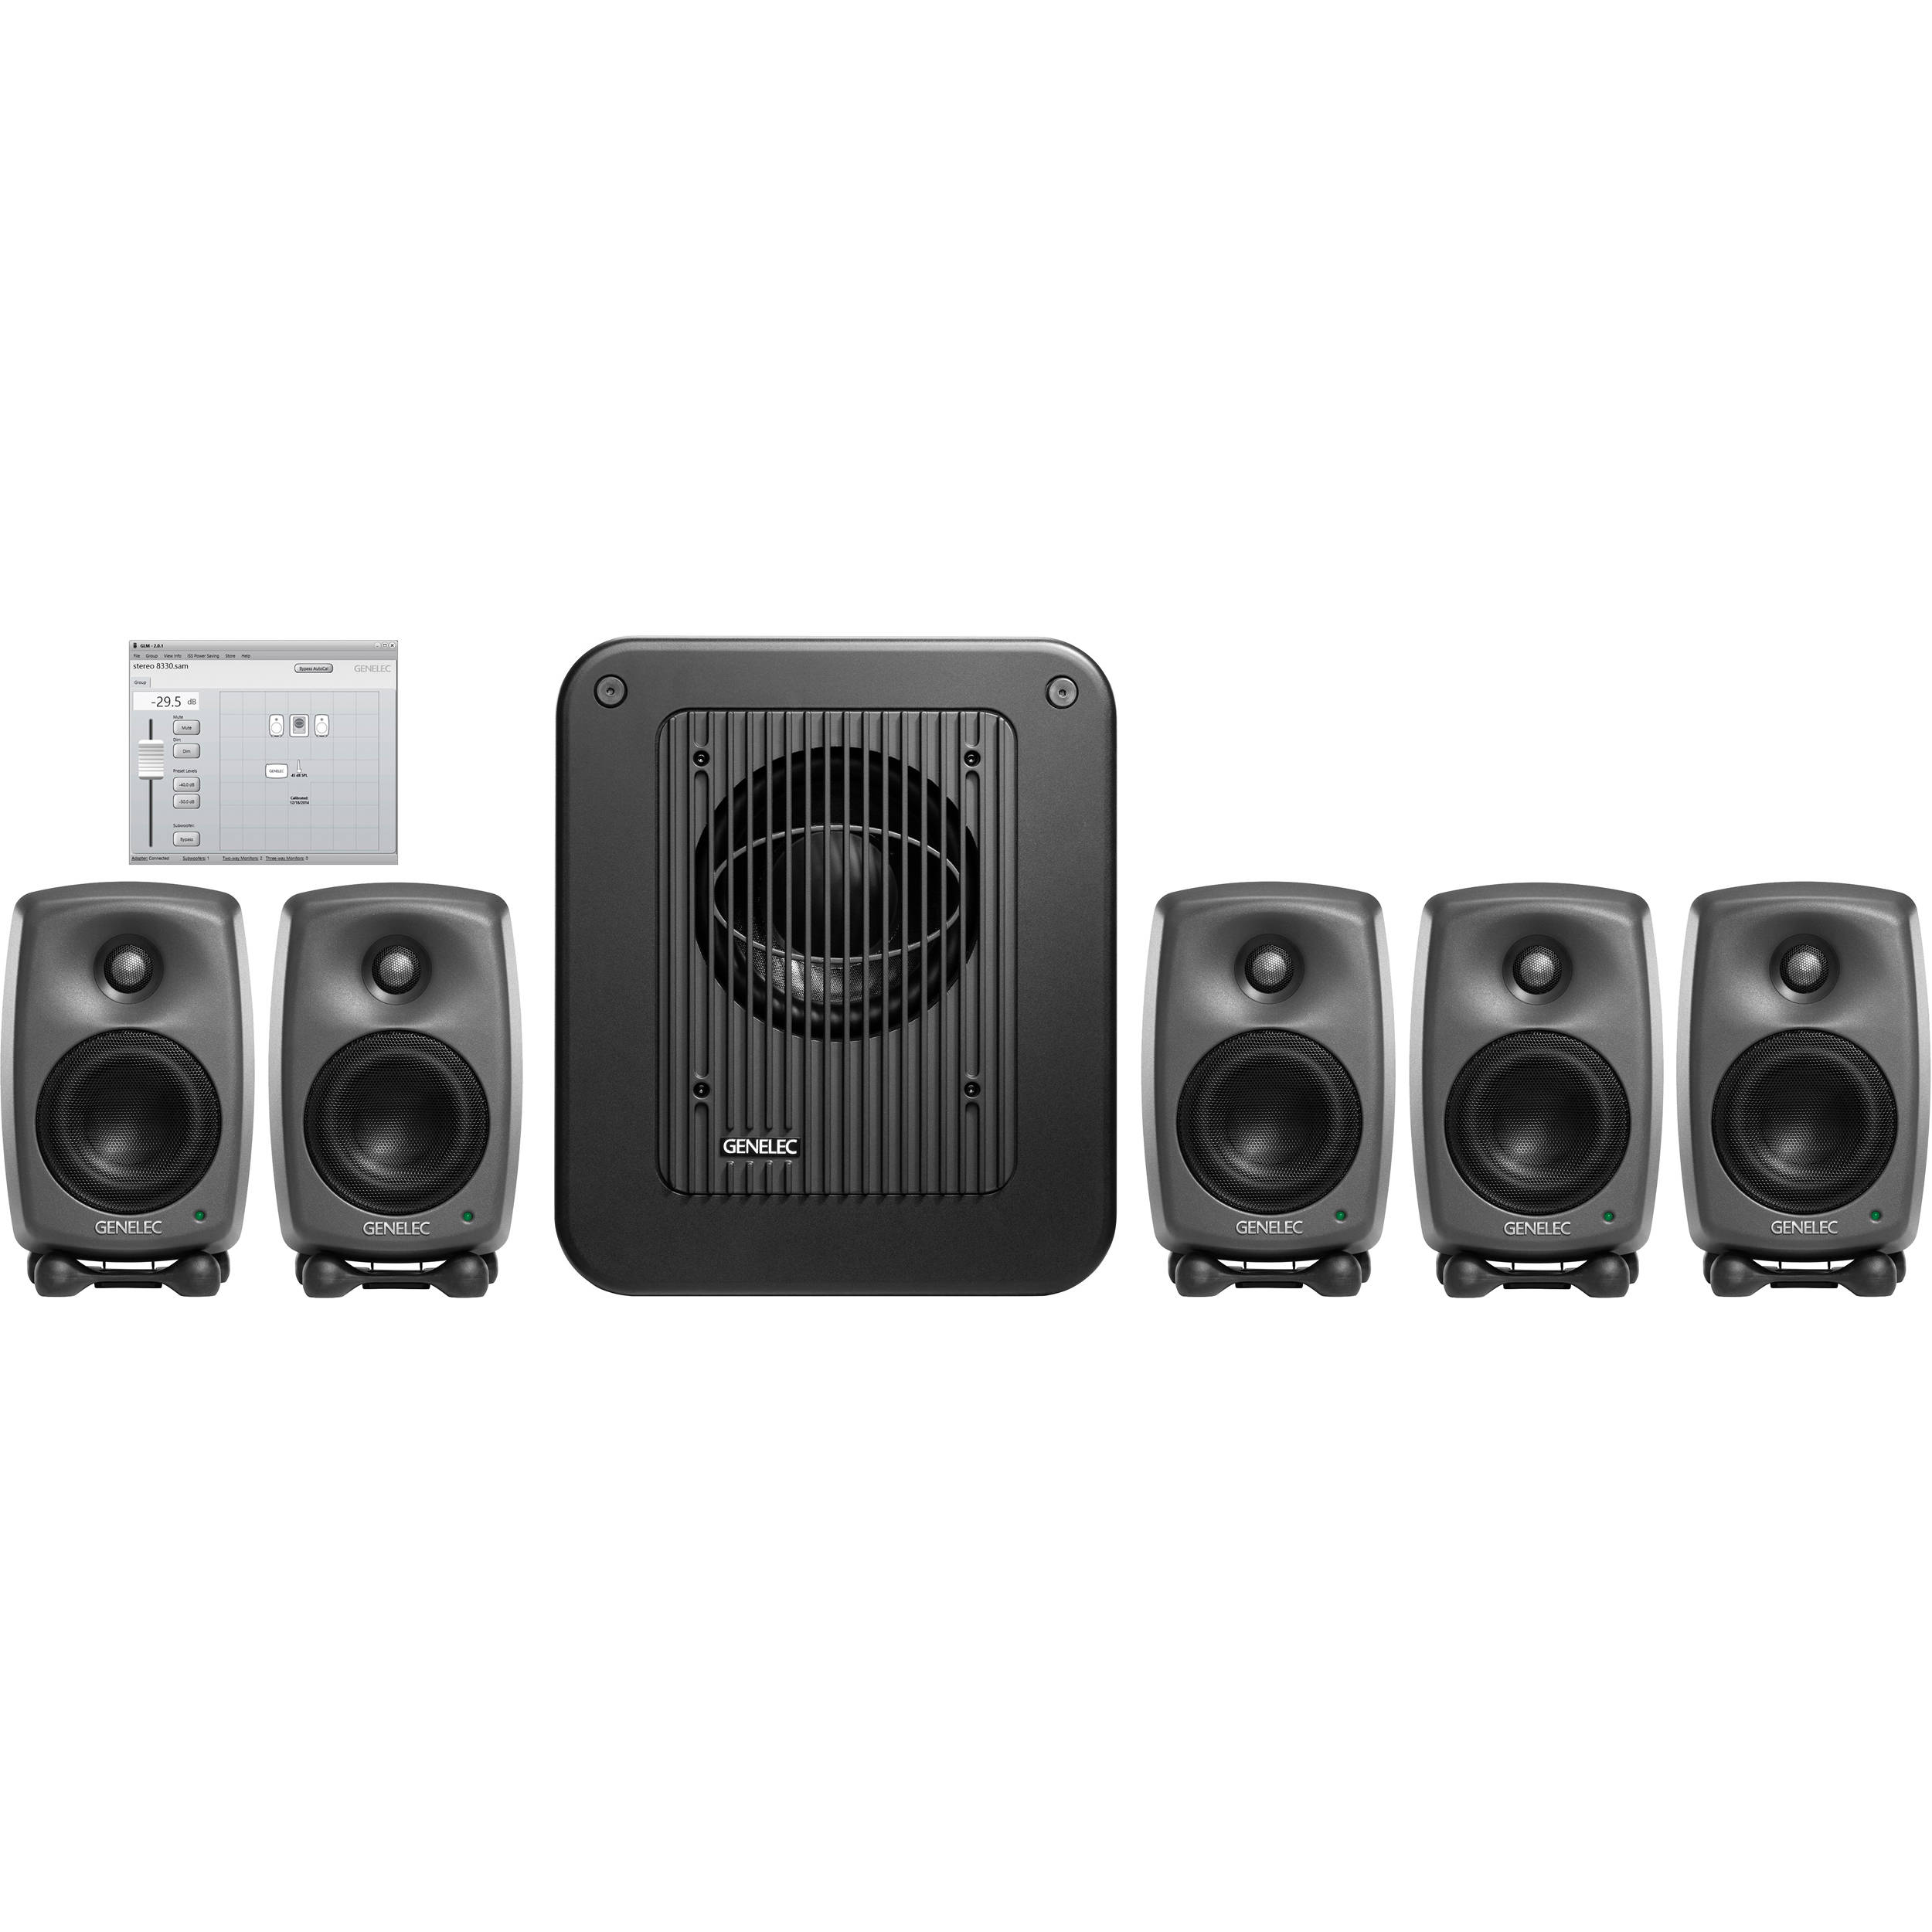 Genelec 8320lse Surround Sam Five Bh Pin Subwoofer Filter Crossover 11 90 Hz Frequency Circuit On Pinterest Lse 8320a One 7350a Glm V2